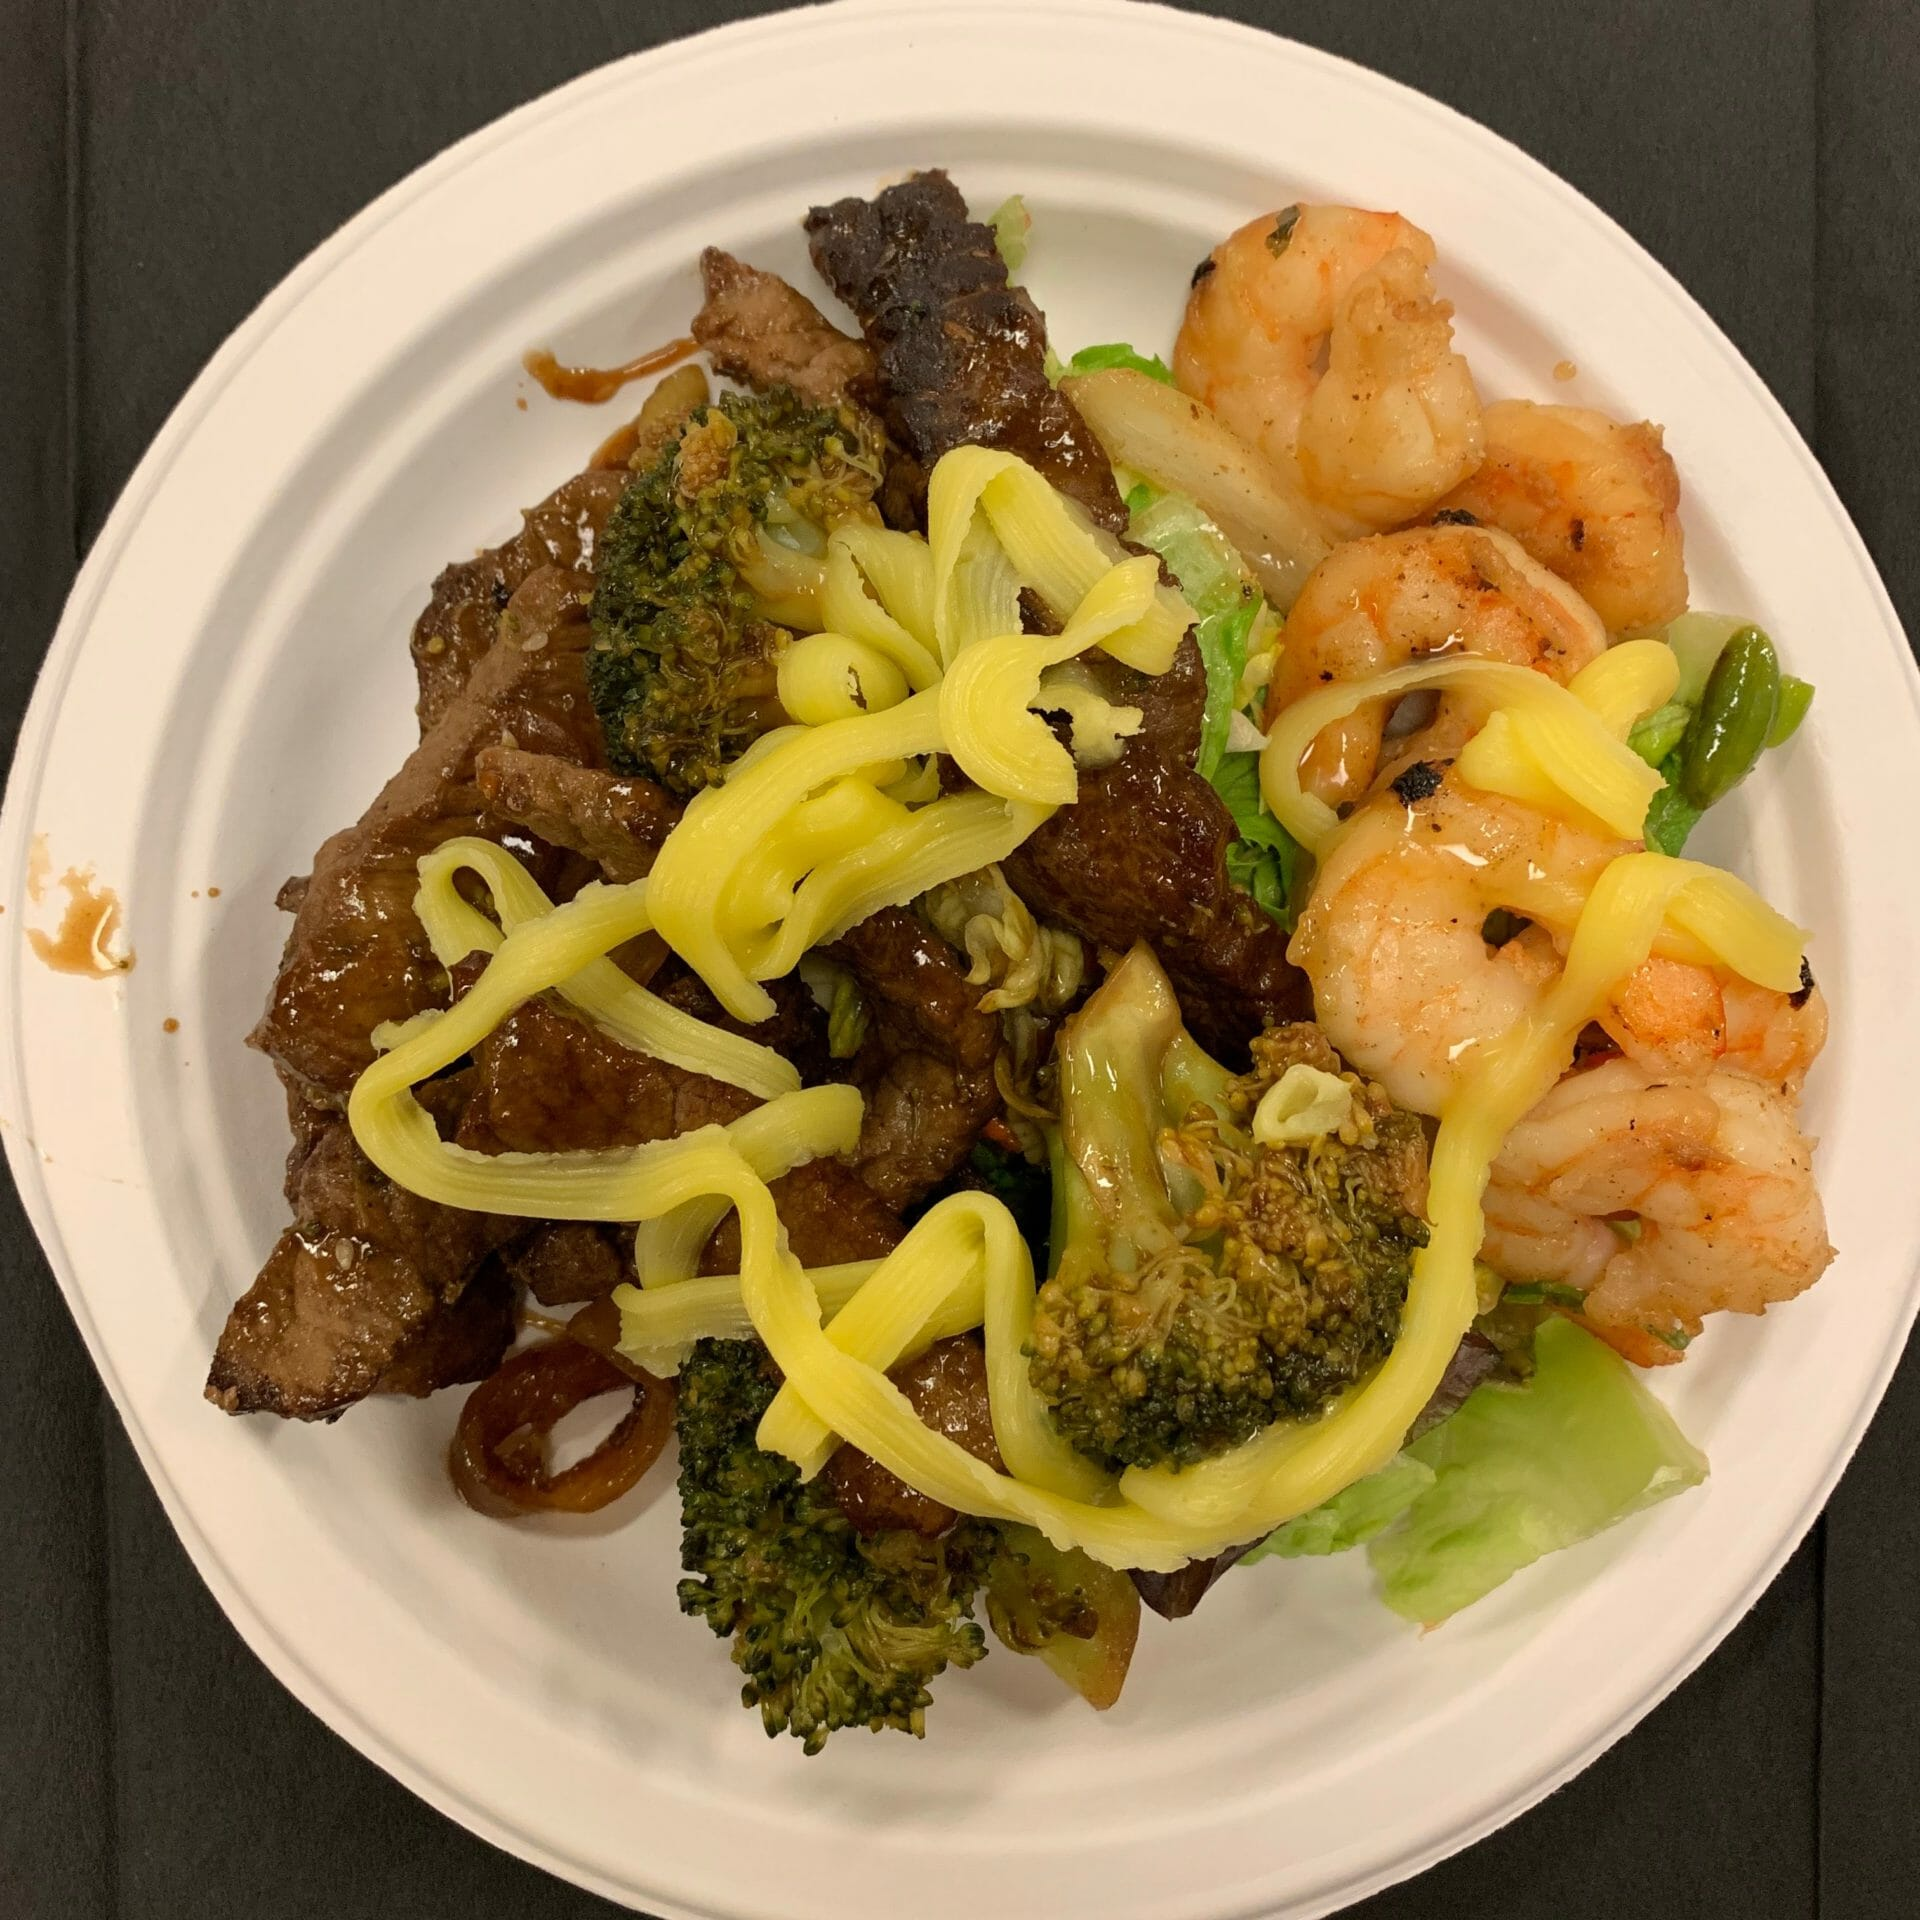 Mongolian beef with broccoli, shrimp and lettuce (tradeshow)